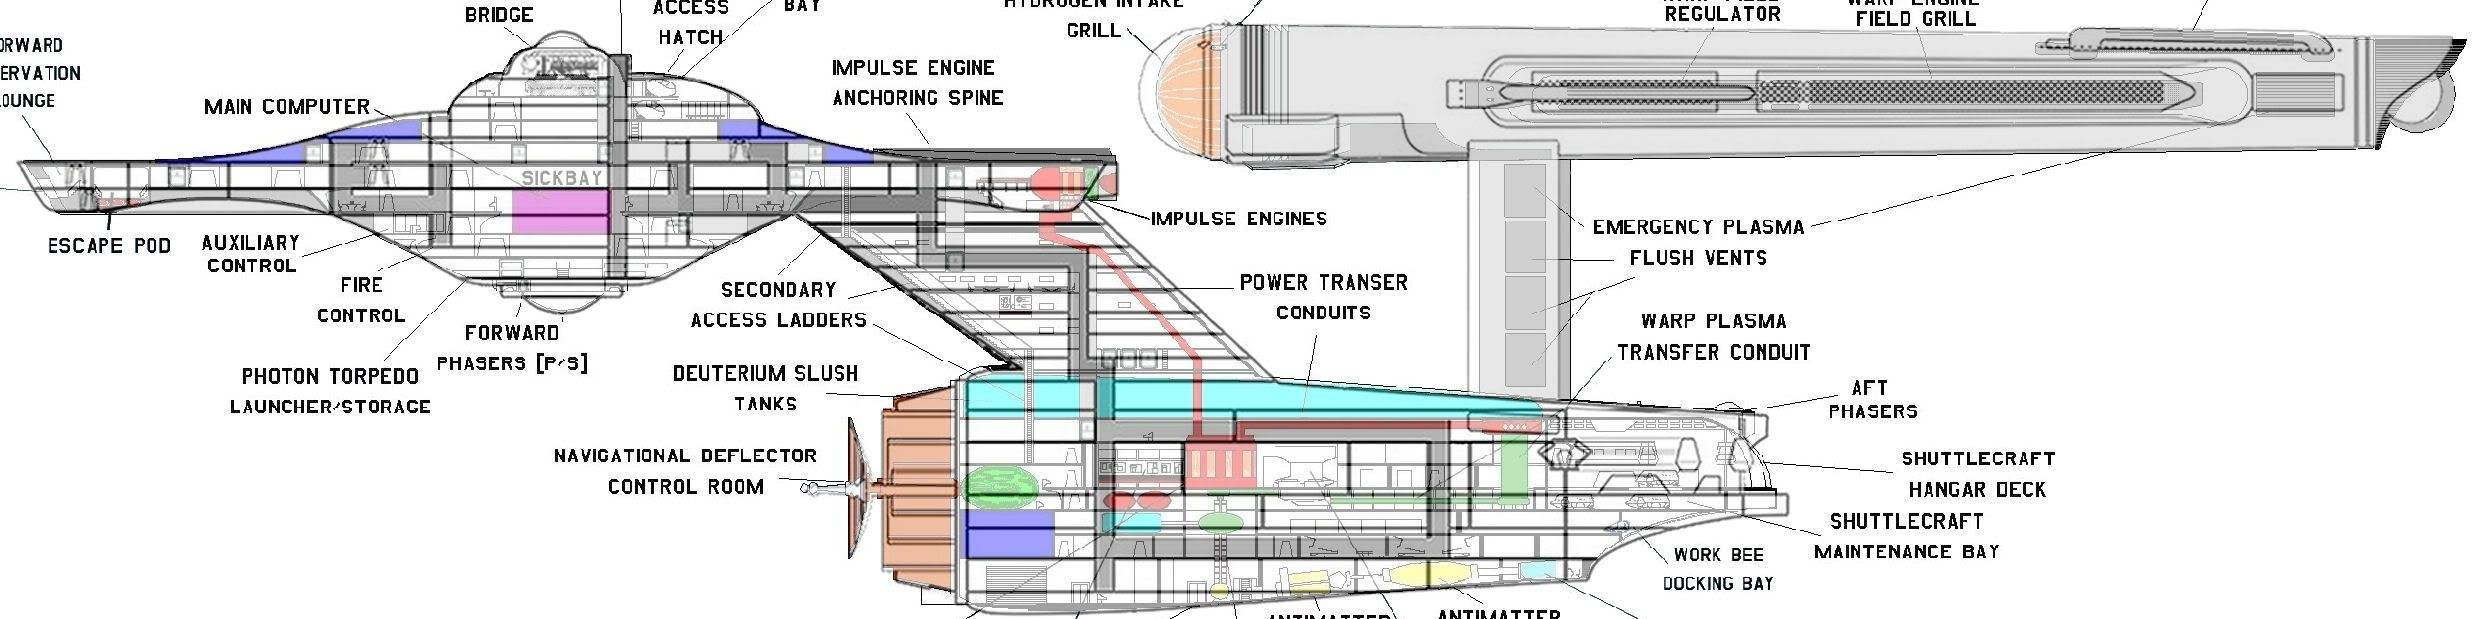 Schematic Of Constitution Class Starship